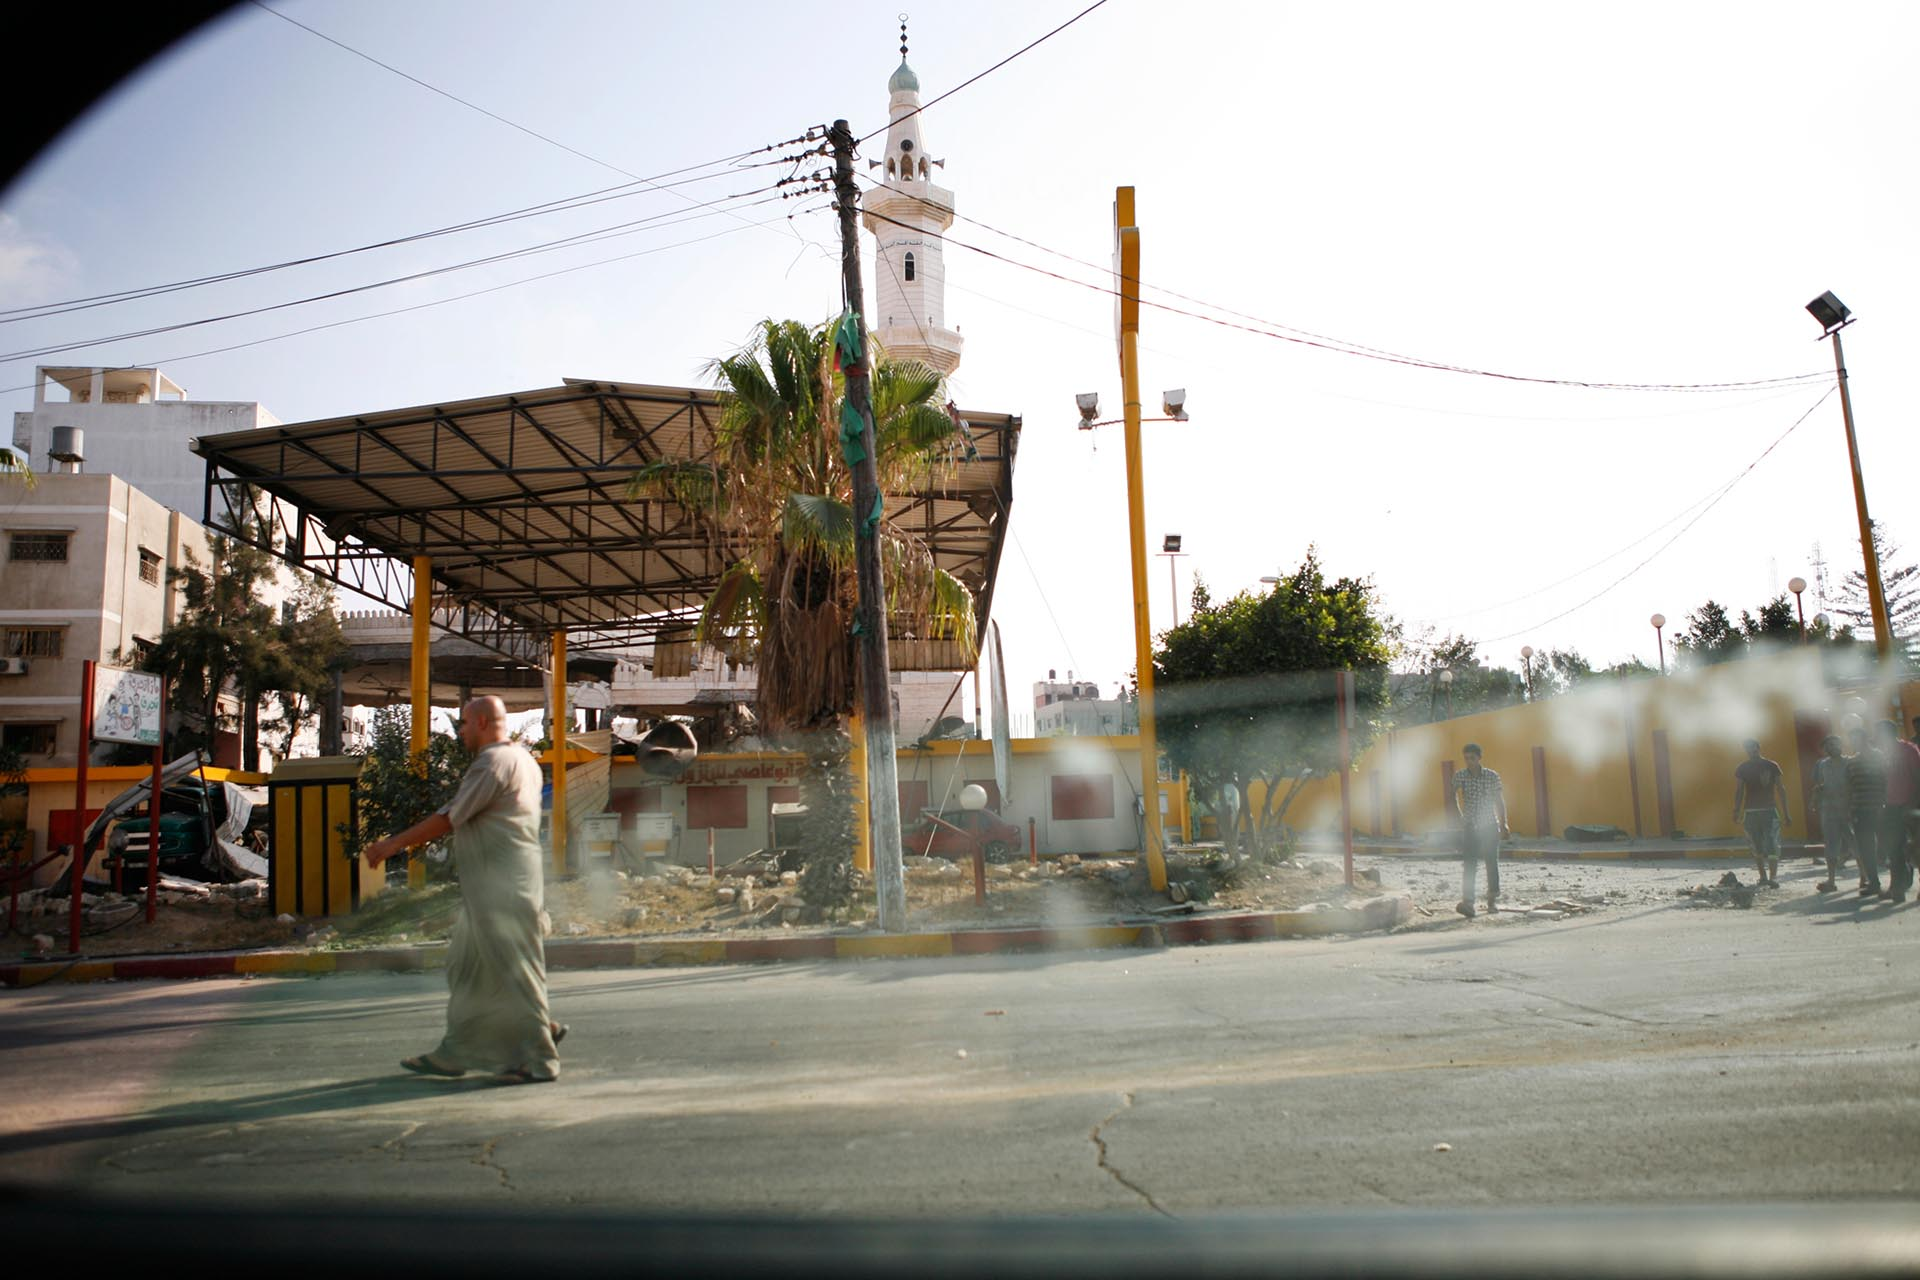 A bombed out gas station in Gaza city. Gaza, July 2014